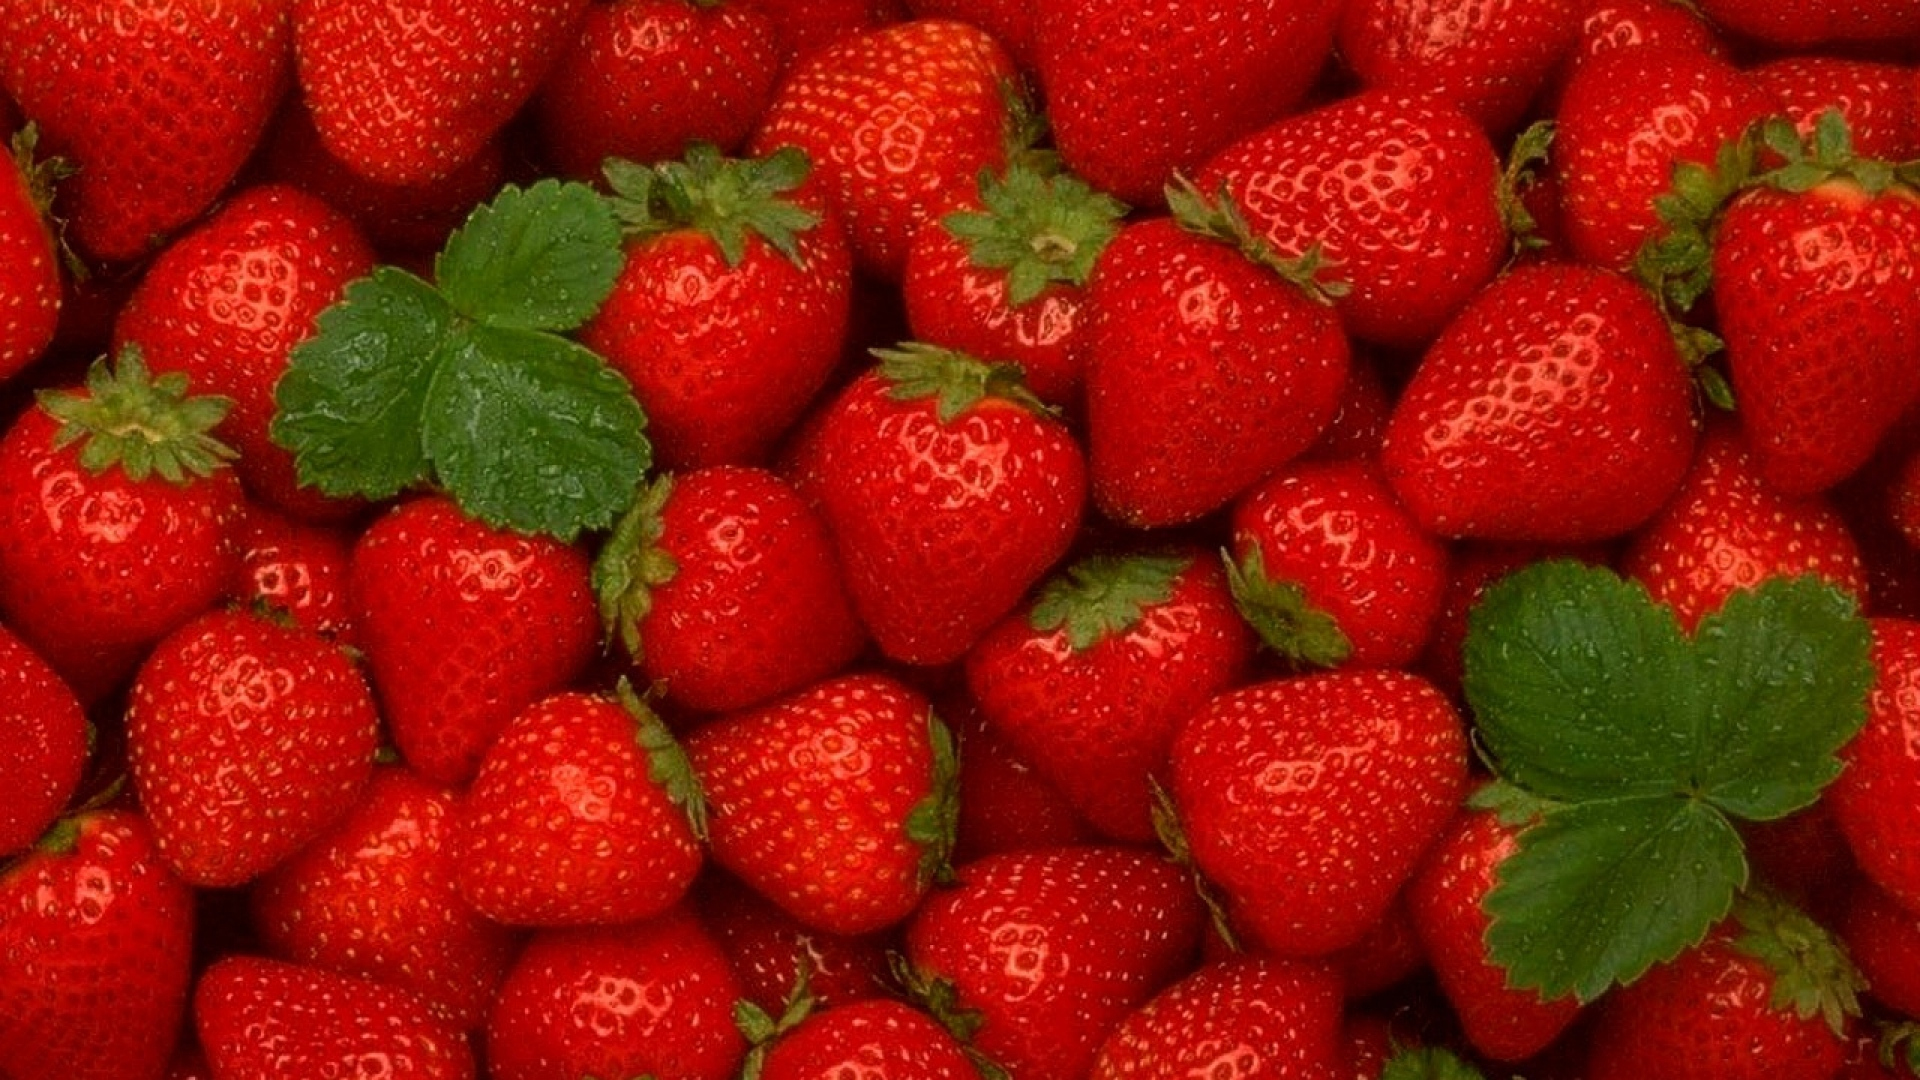 Download Wallpaper 1920x1080 strawberry, ripe, red, berry, leaves ...